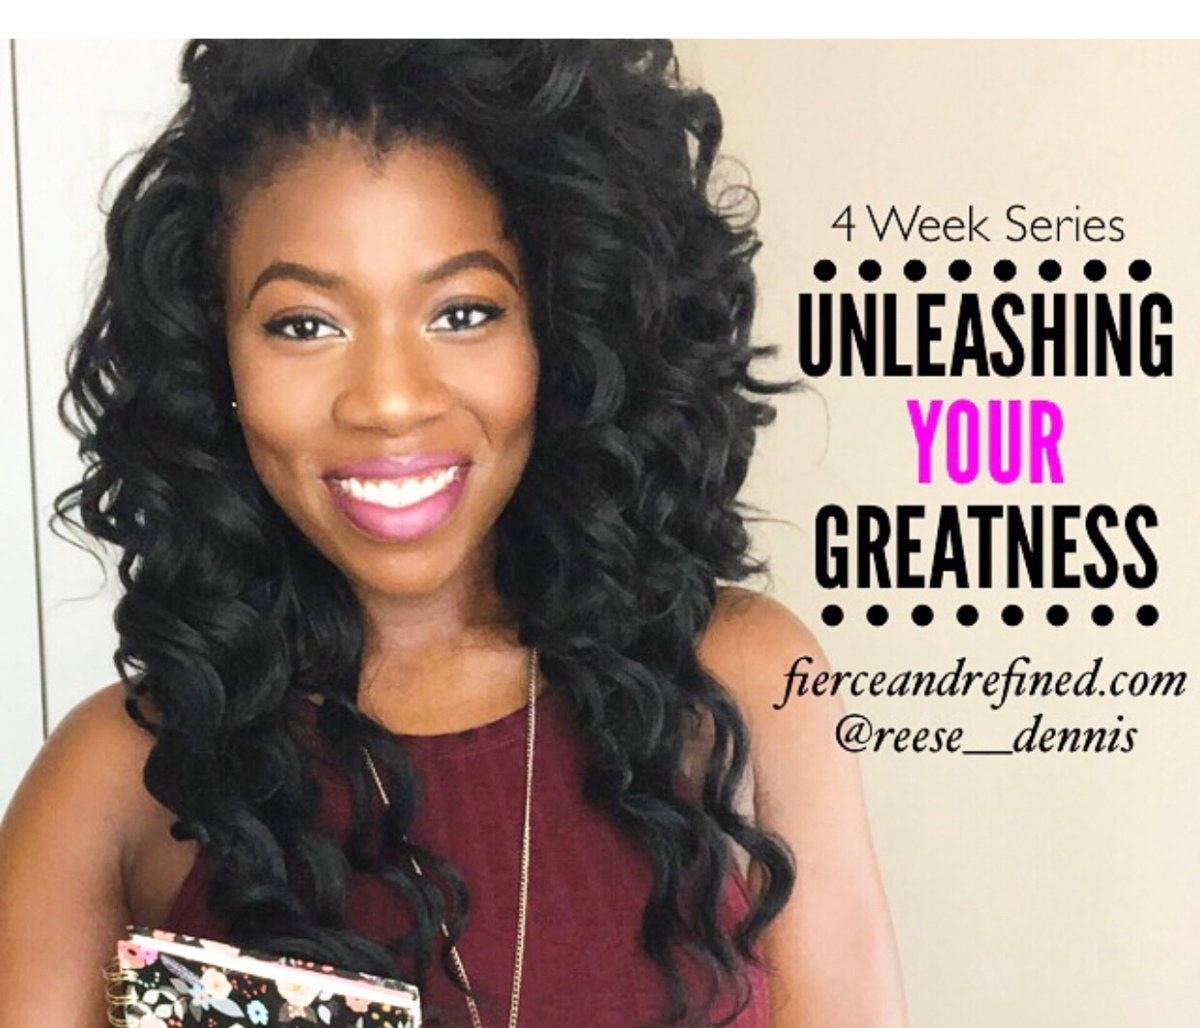 Unleashing Your Greatness | 3 Questions to Help You See the You that God Sees